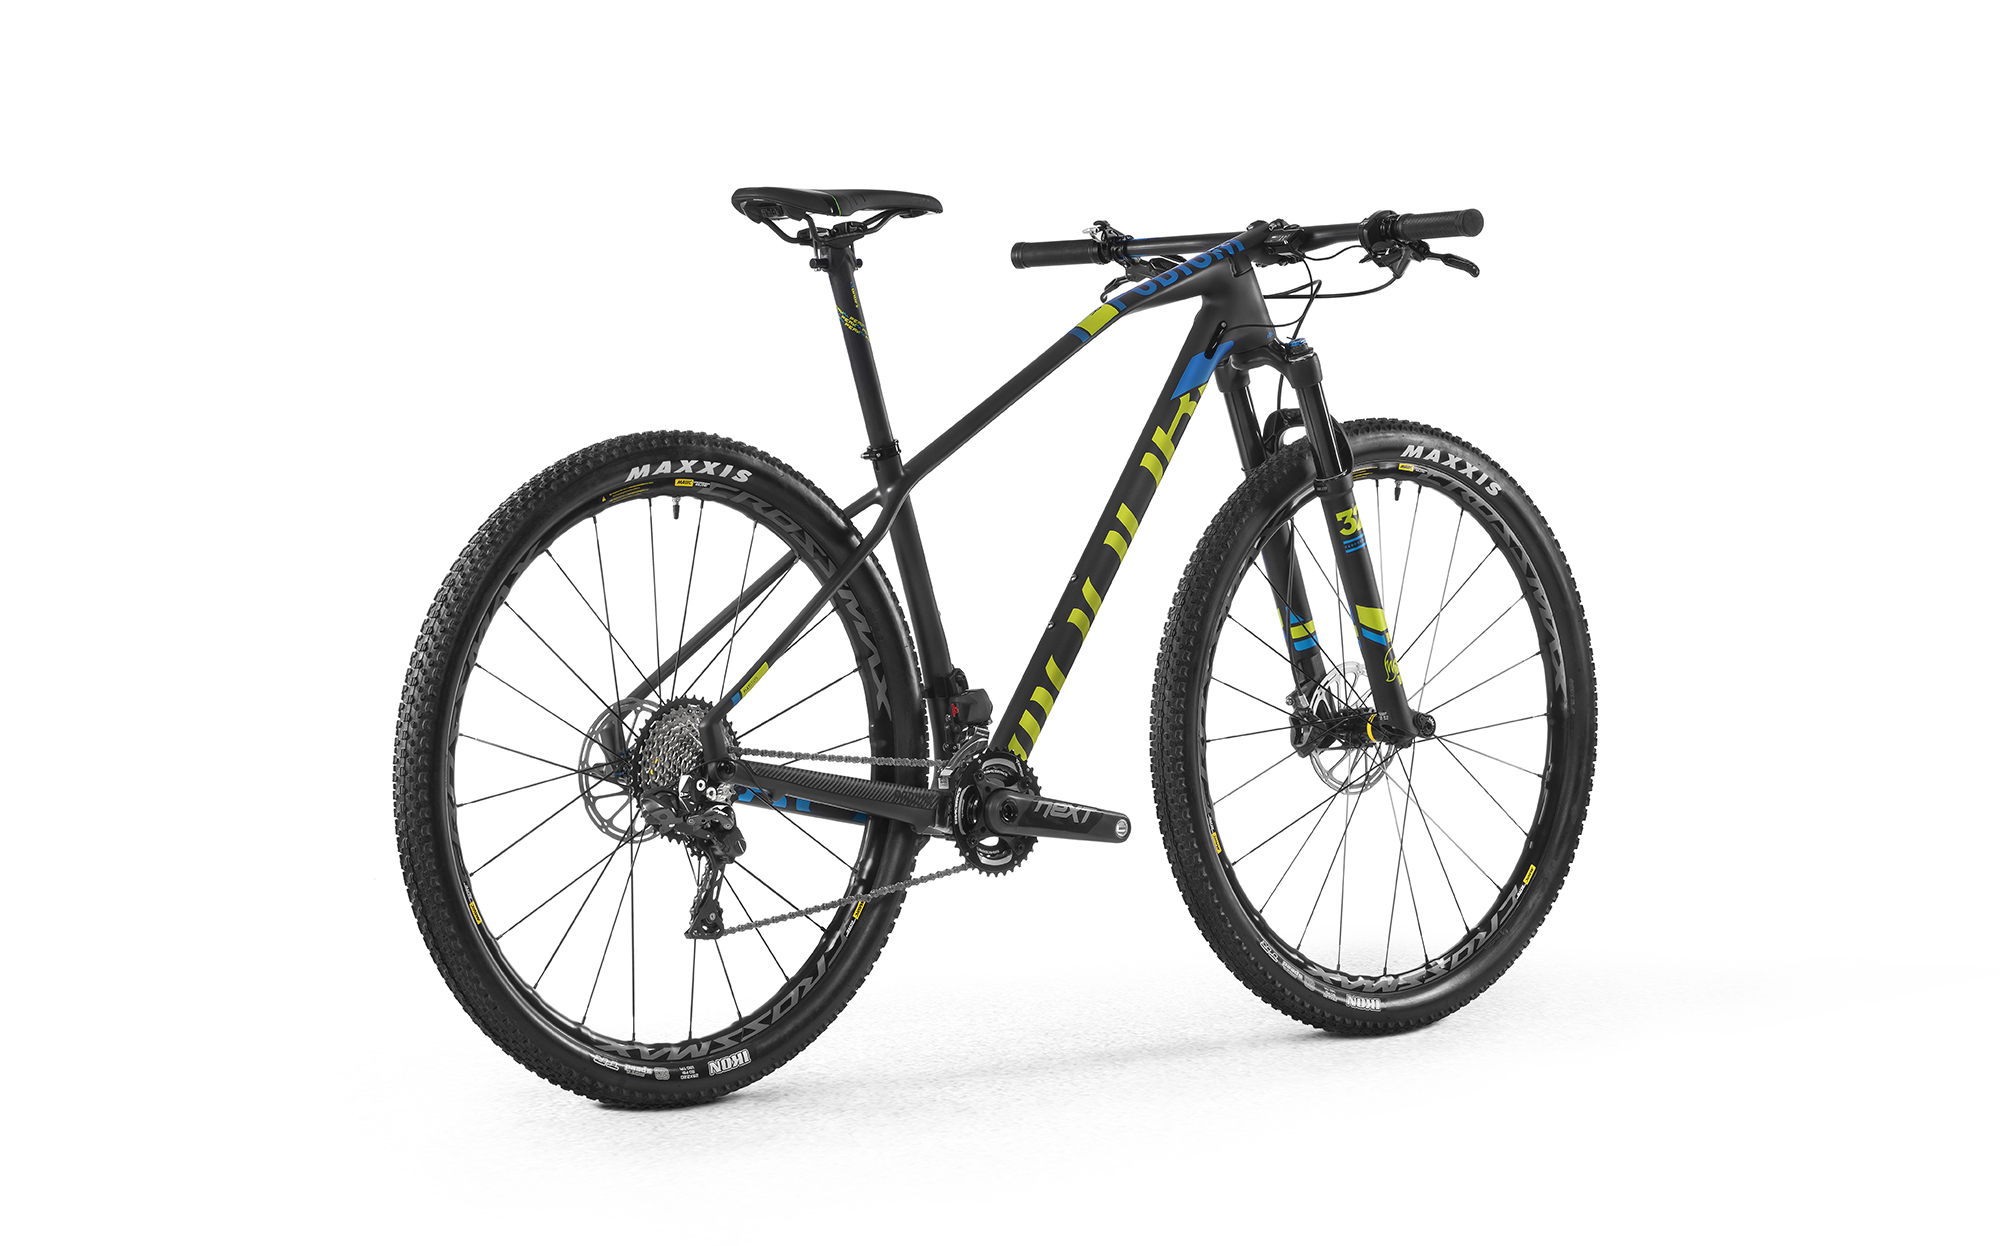 2017 Mondraker Podium Carbon Rr Di2 29er Hardtail Cross Country